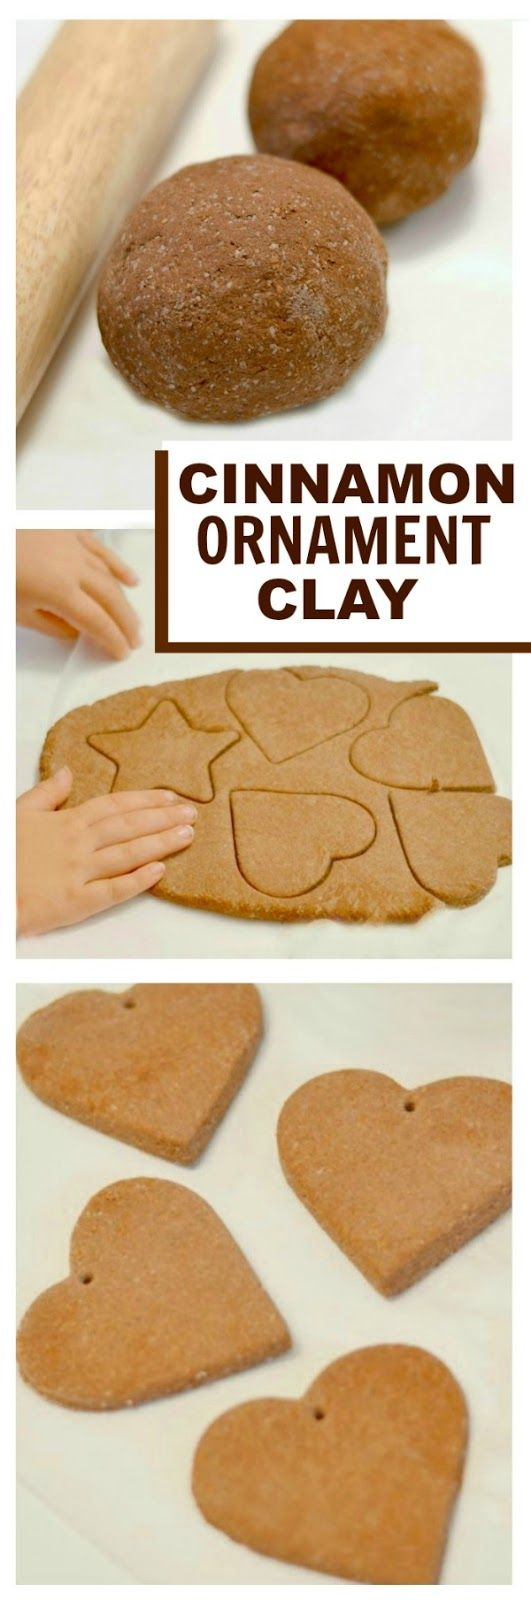 NO COOK CINNAMON ORNAMENT CLAY- takes 1 minute to make & smells AMAZING!